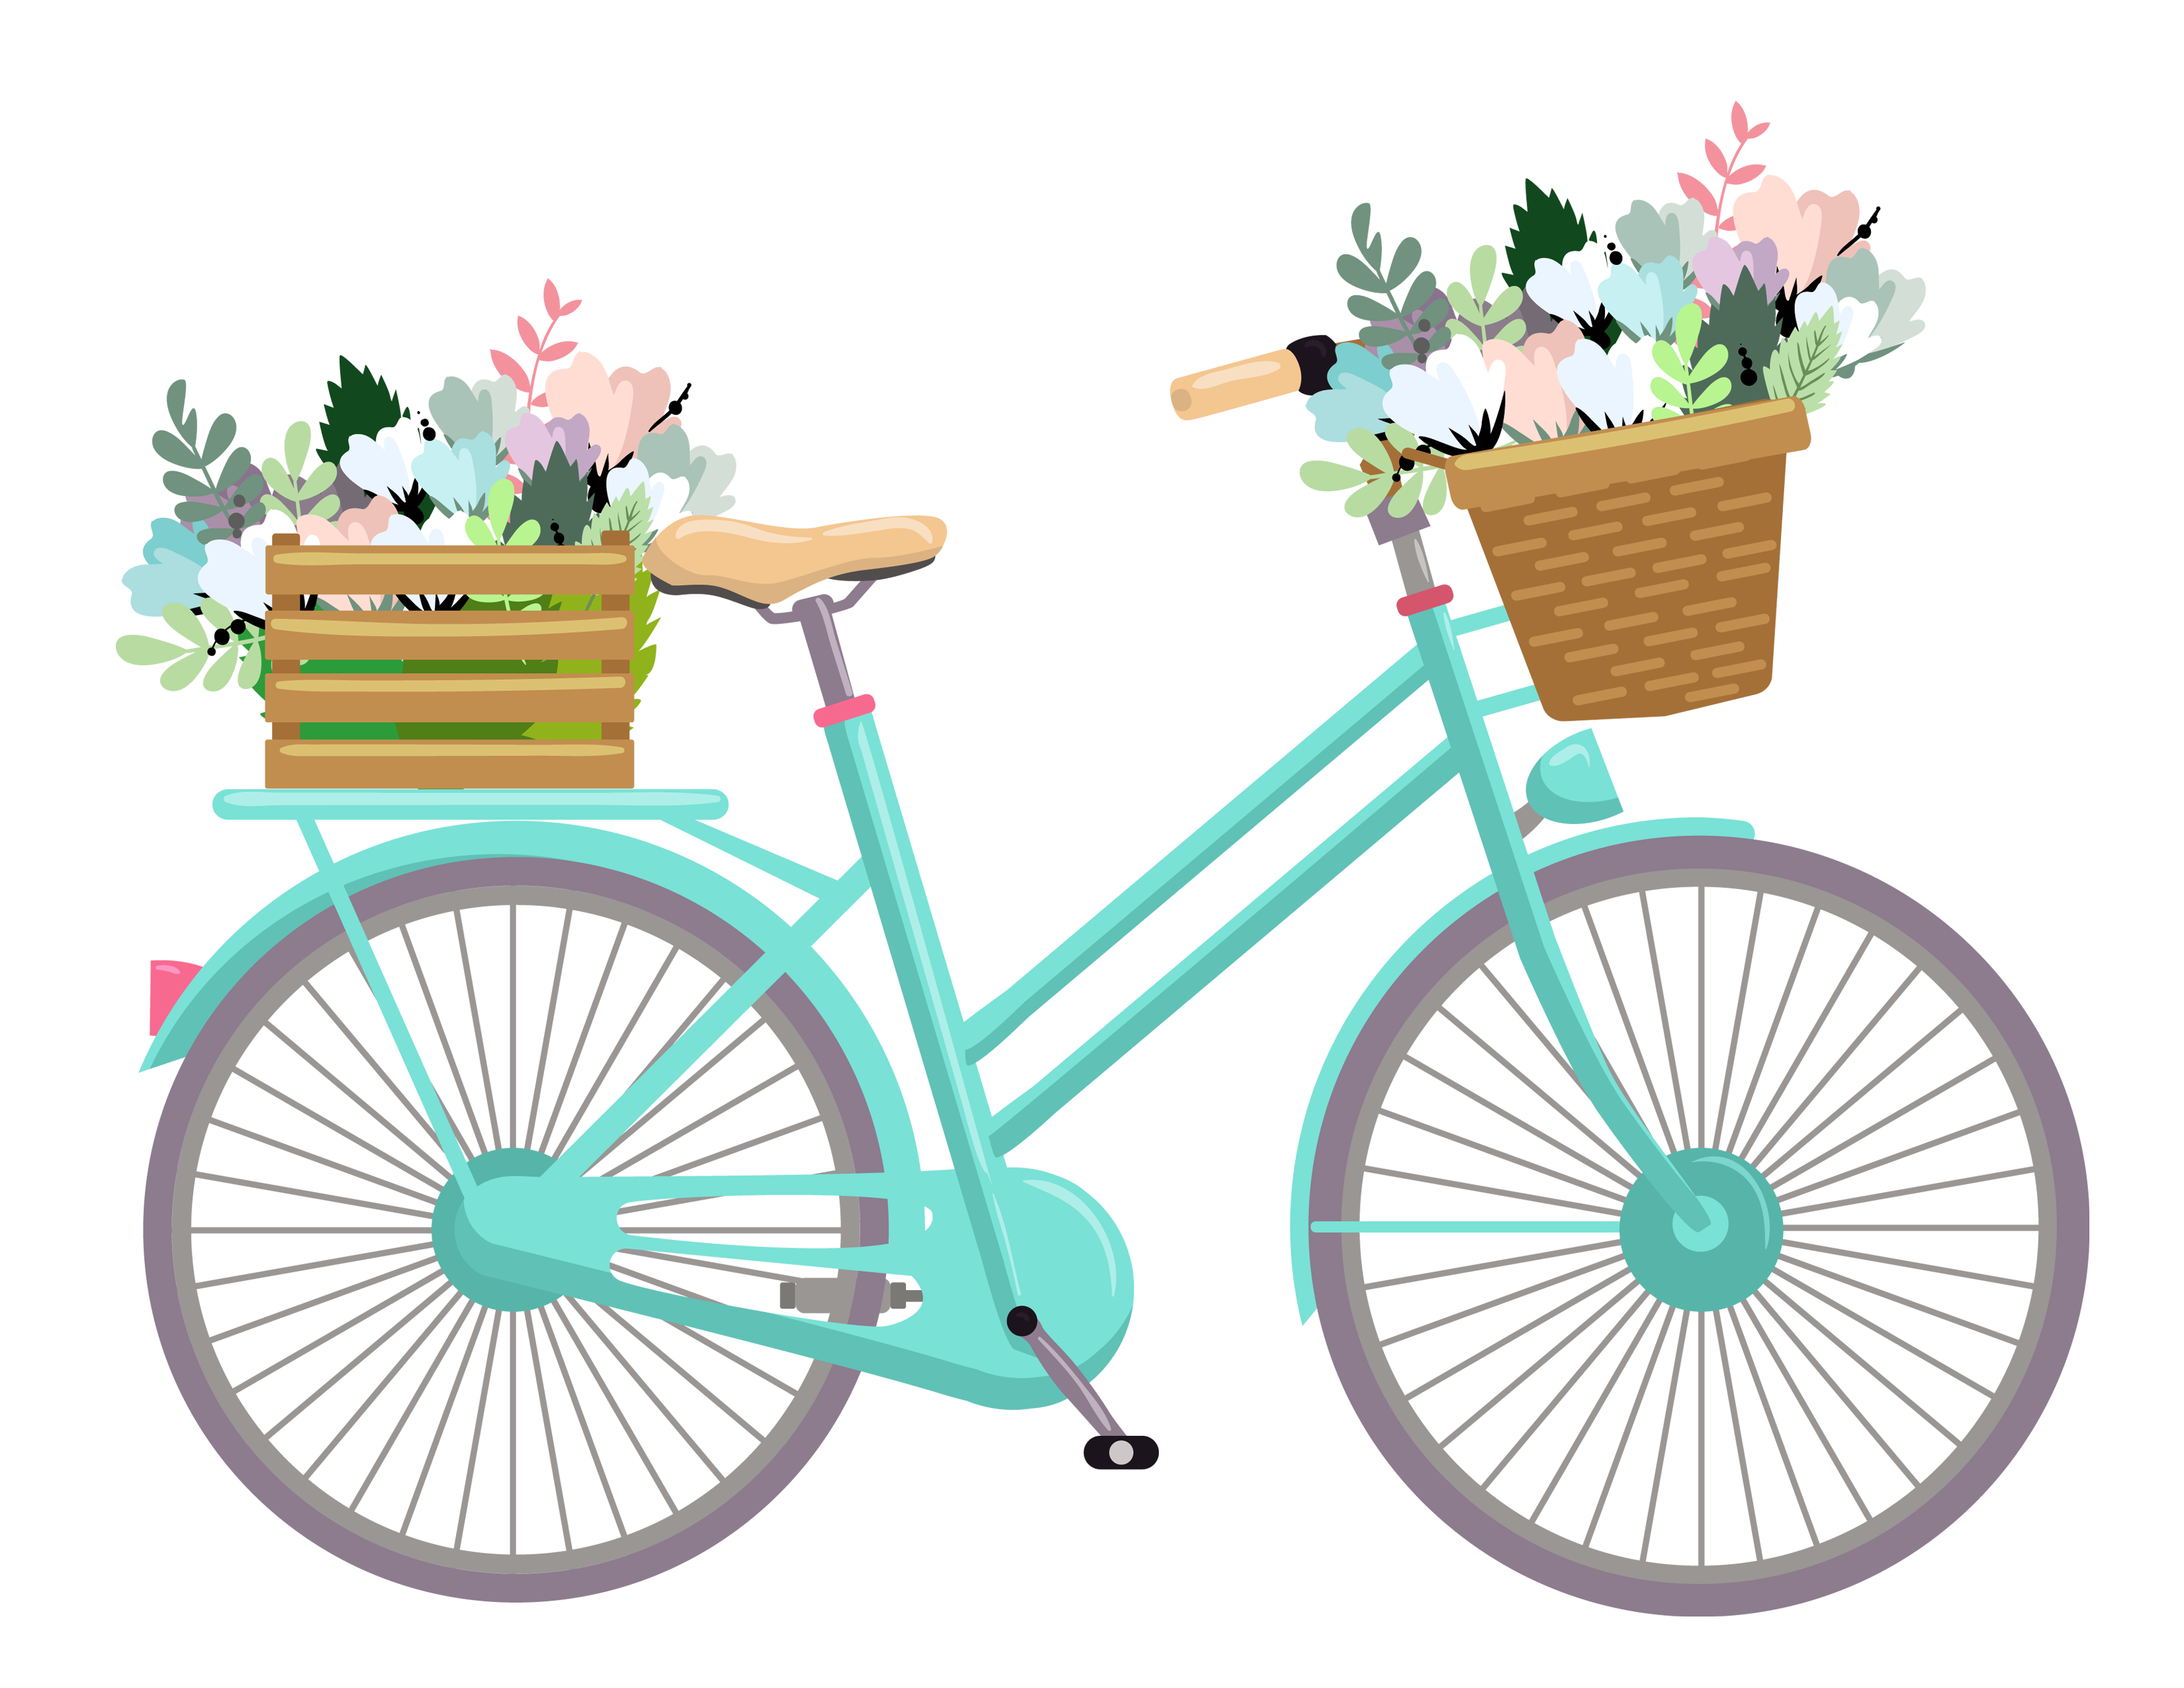 Bicycle clipart cute. Free clip art download